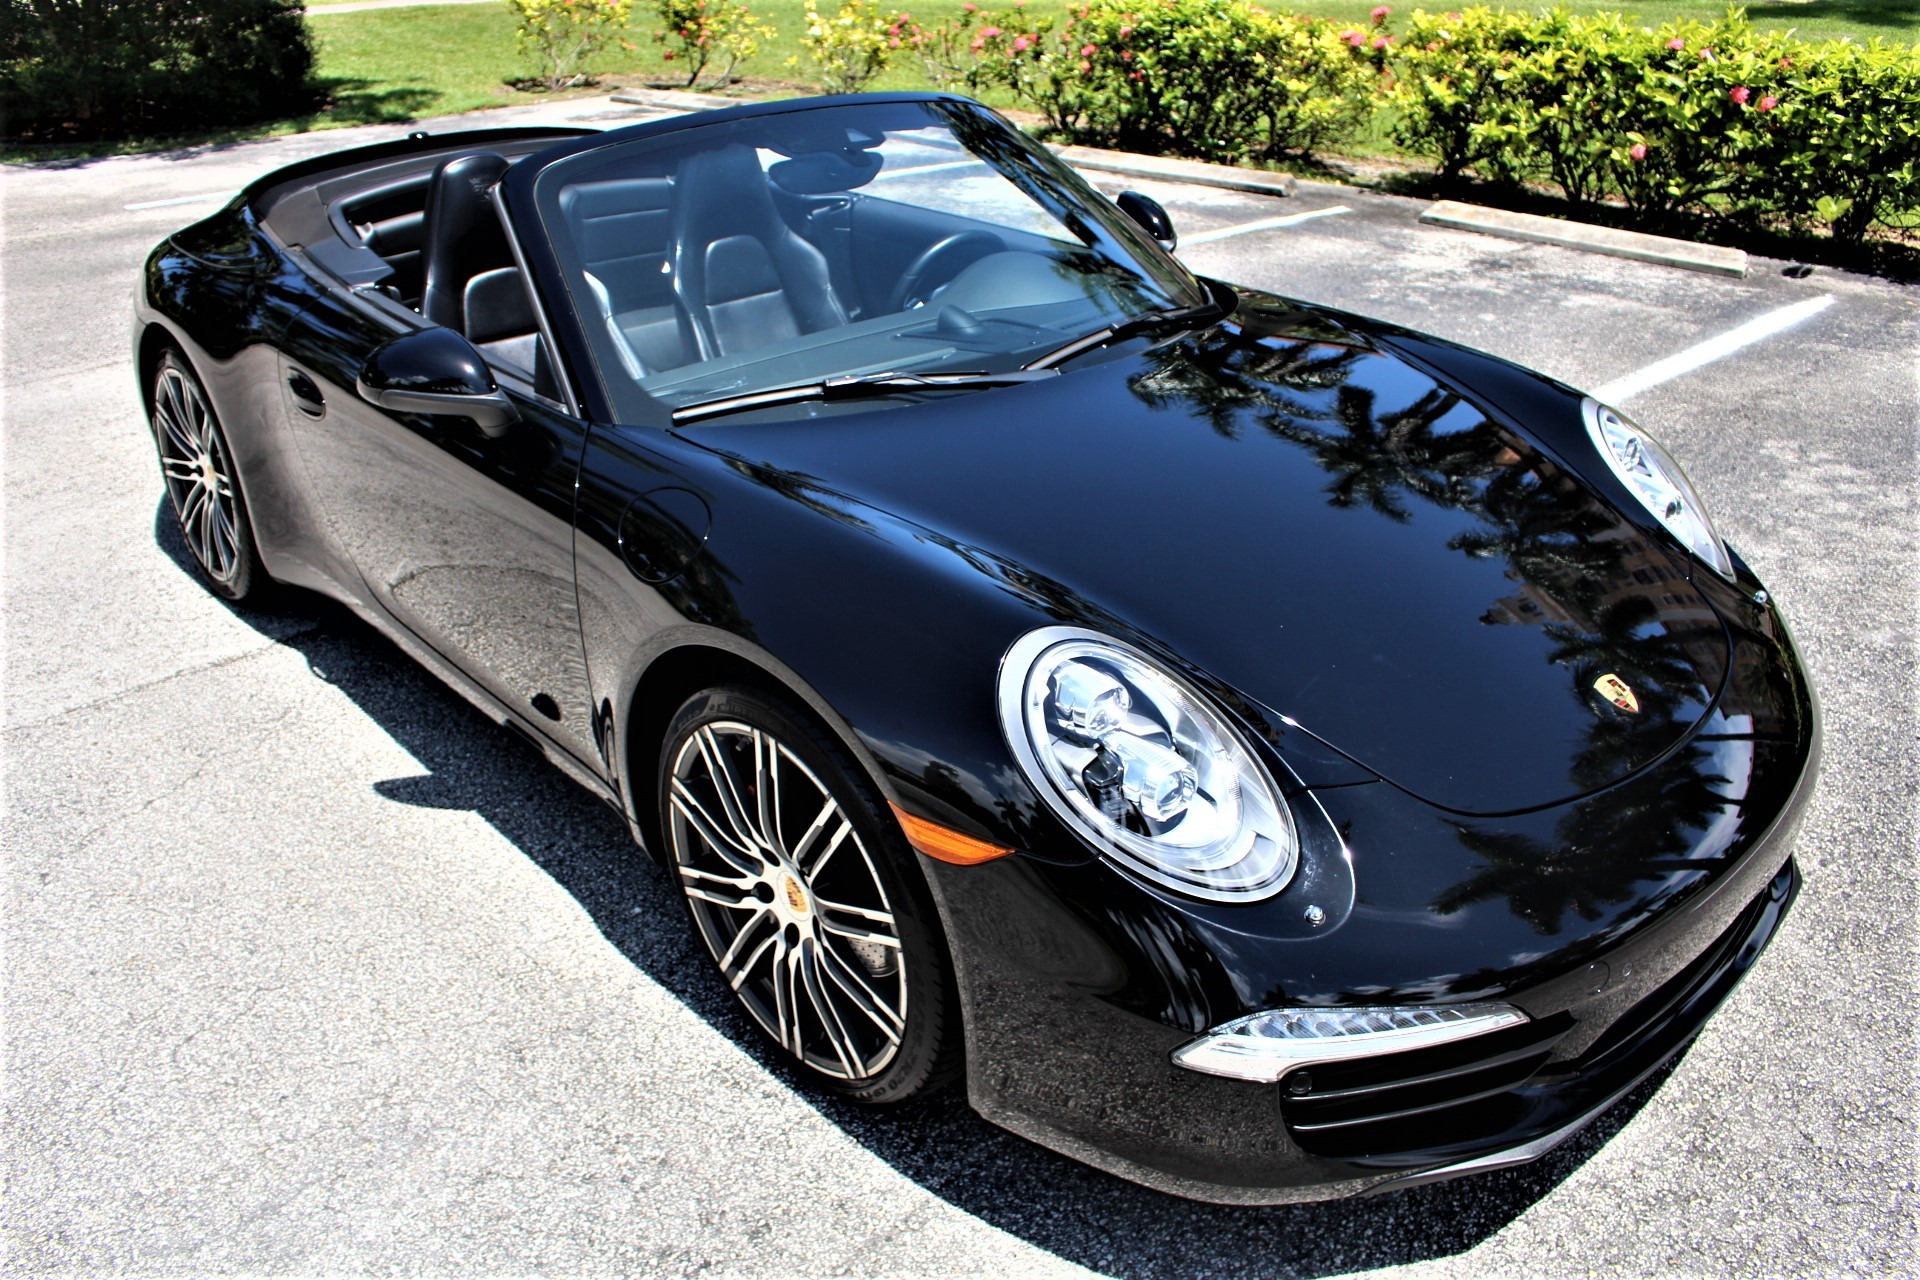 Used 2016 Porsche 911 Carrera Black Edition for sale Sold at The Gables Sports Cars in Miami FL 33146 4